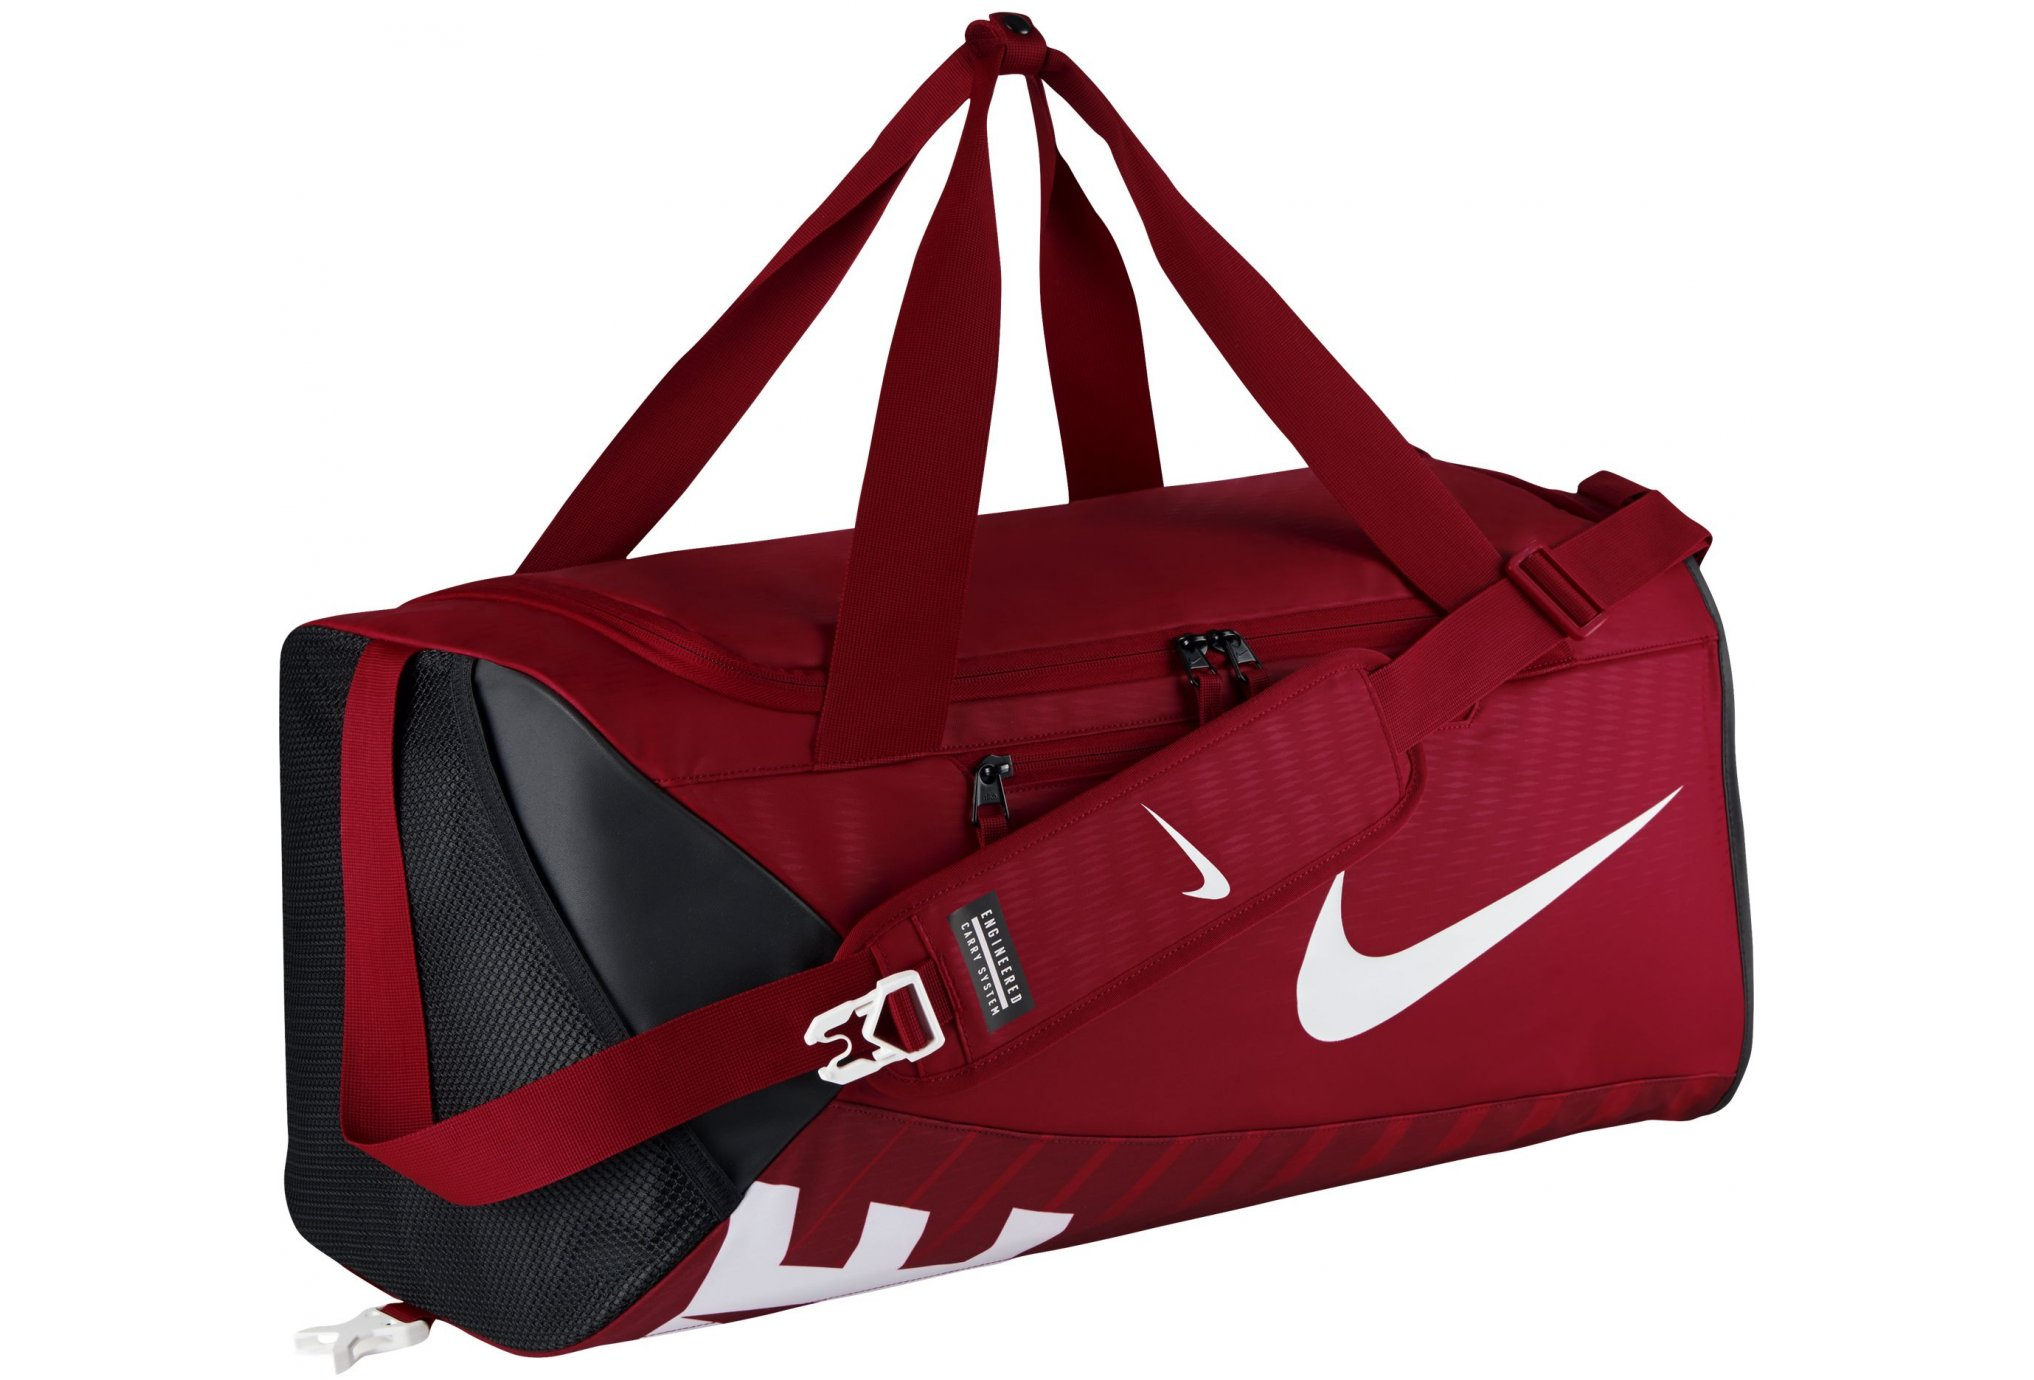 Nike Sac Alpha Adapt Cross Body - M Sac de sport